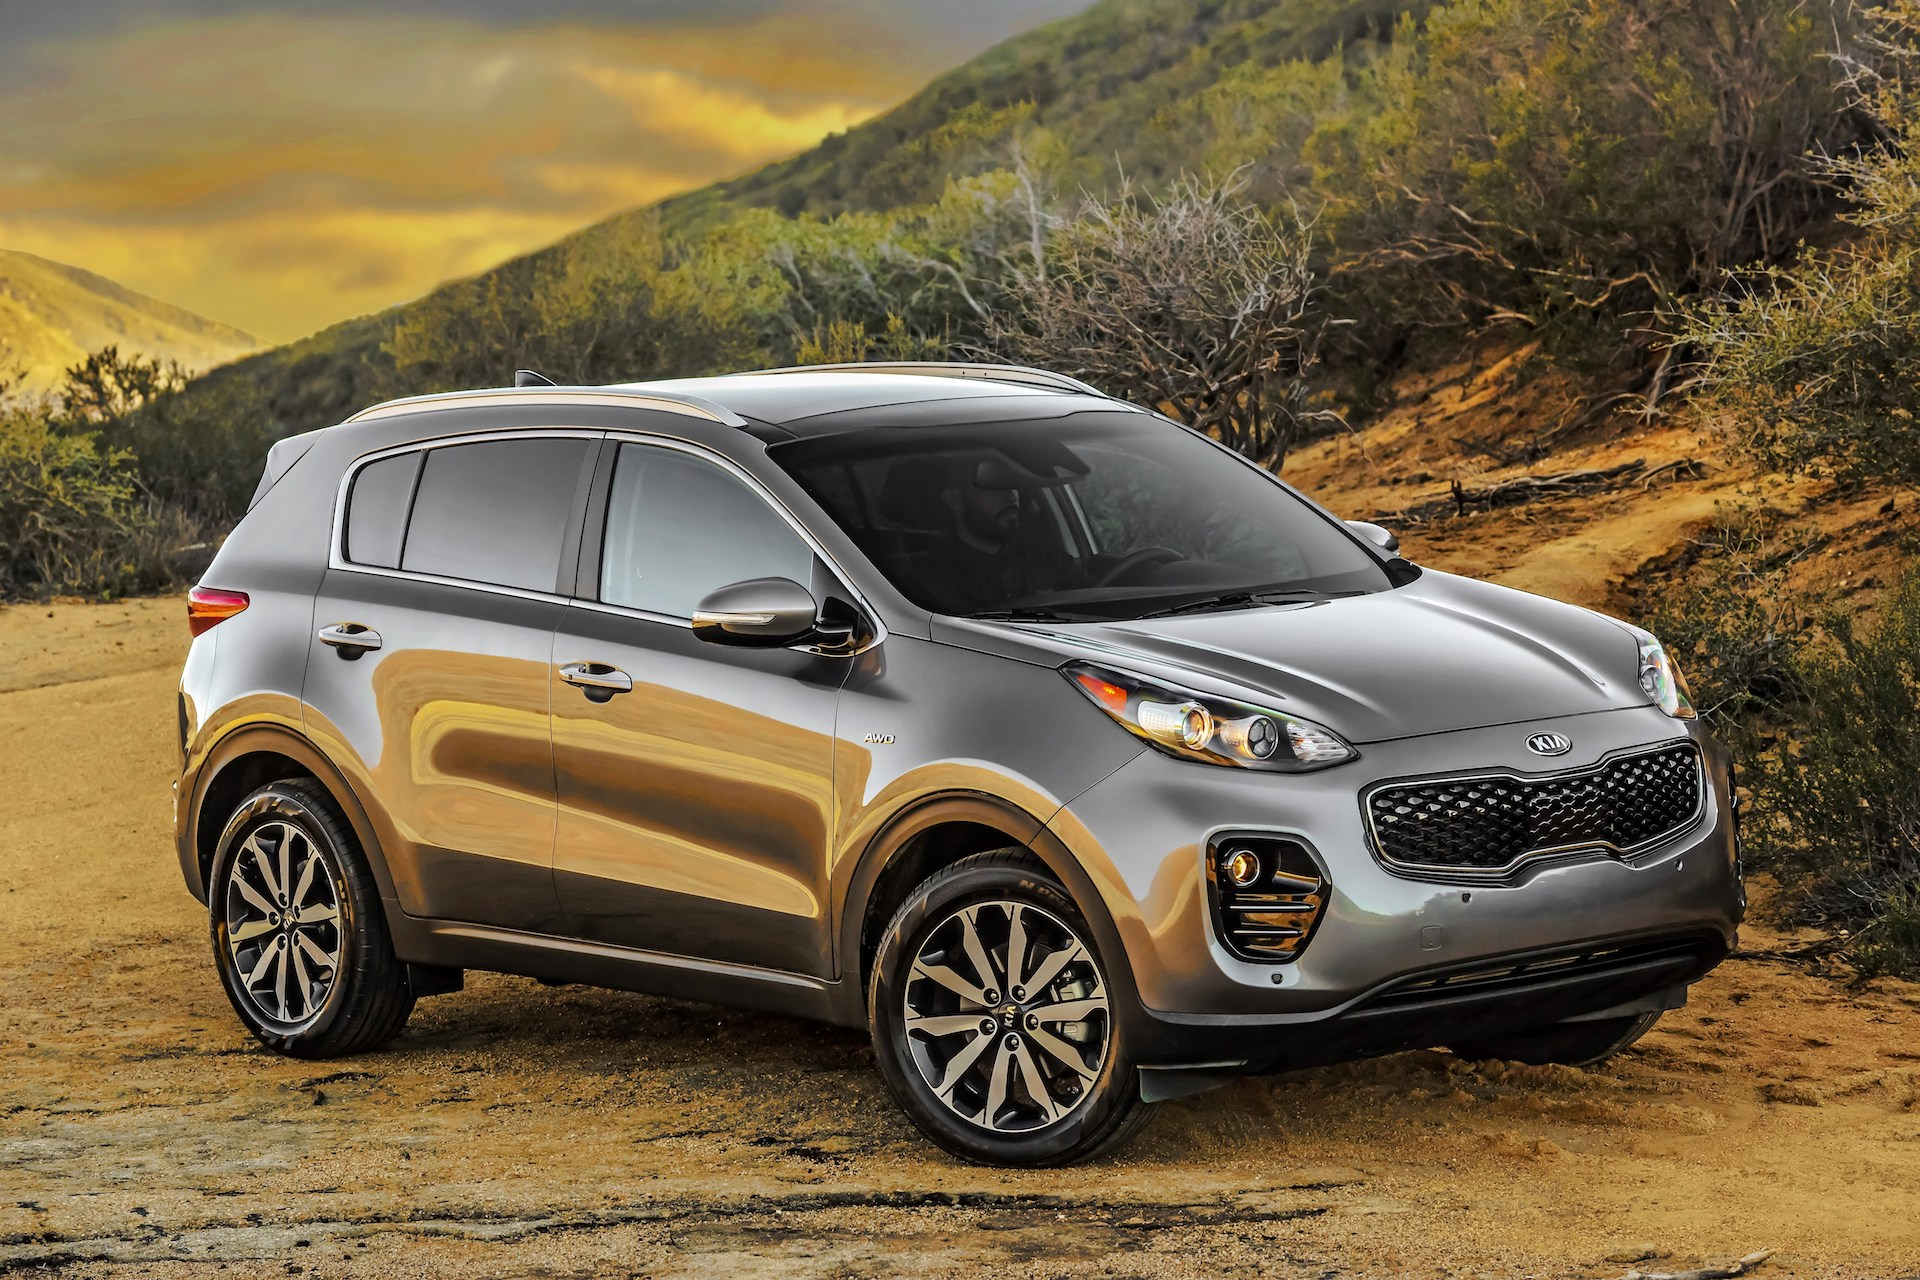 new and used kia sportage prices photos reviews specs the car connection. Black Bedroom Furniture Sets. Home Design Ideas